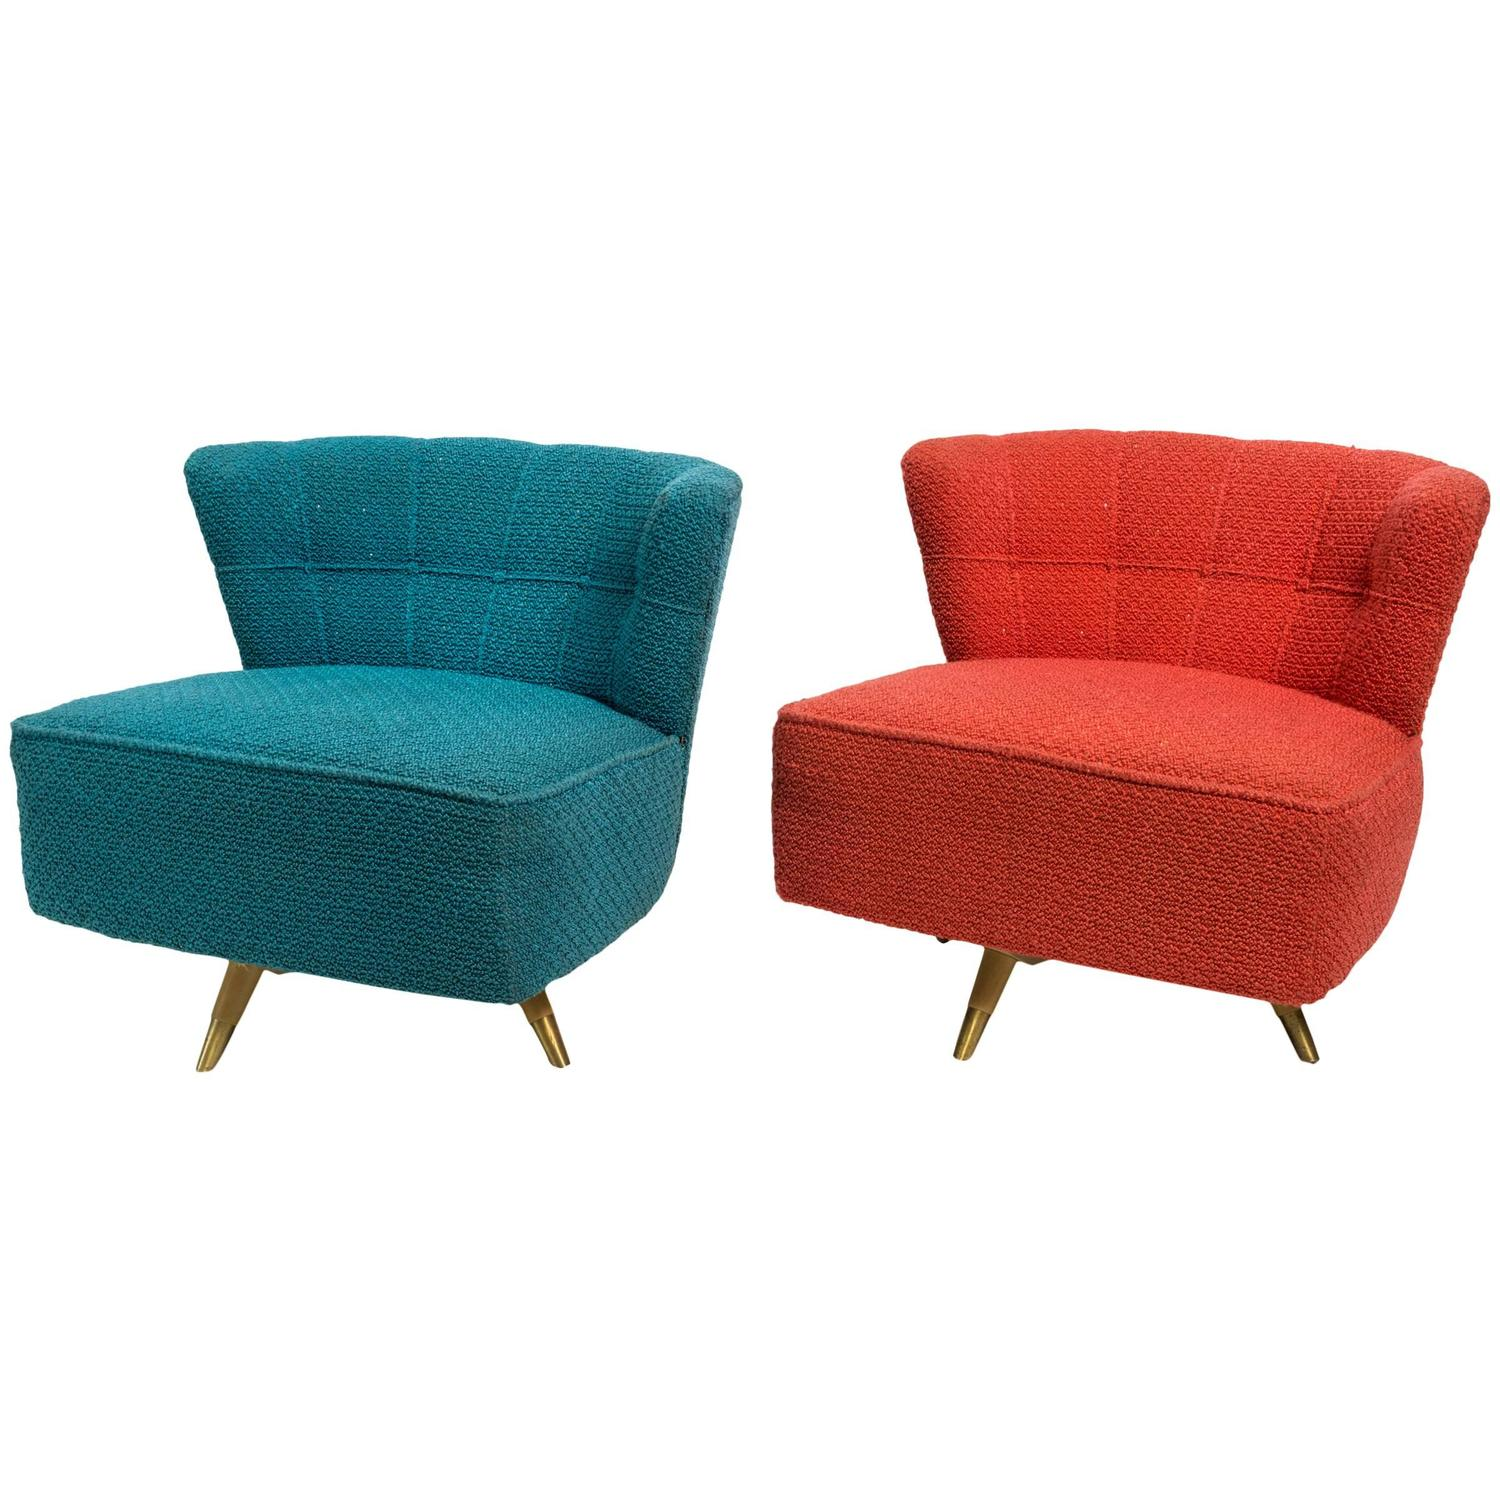 Image Result For American Furniture Chairs